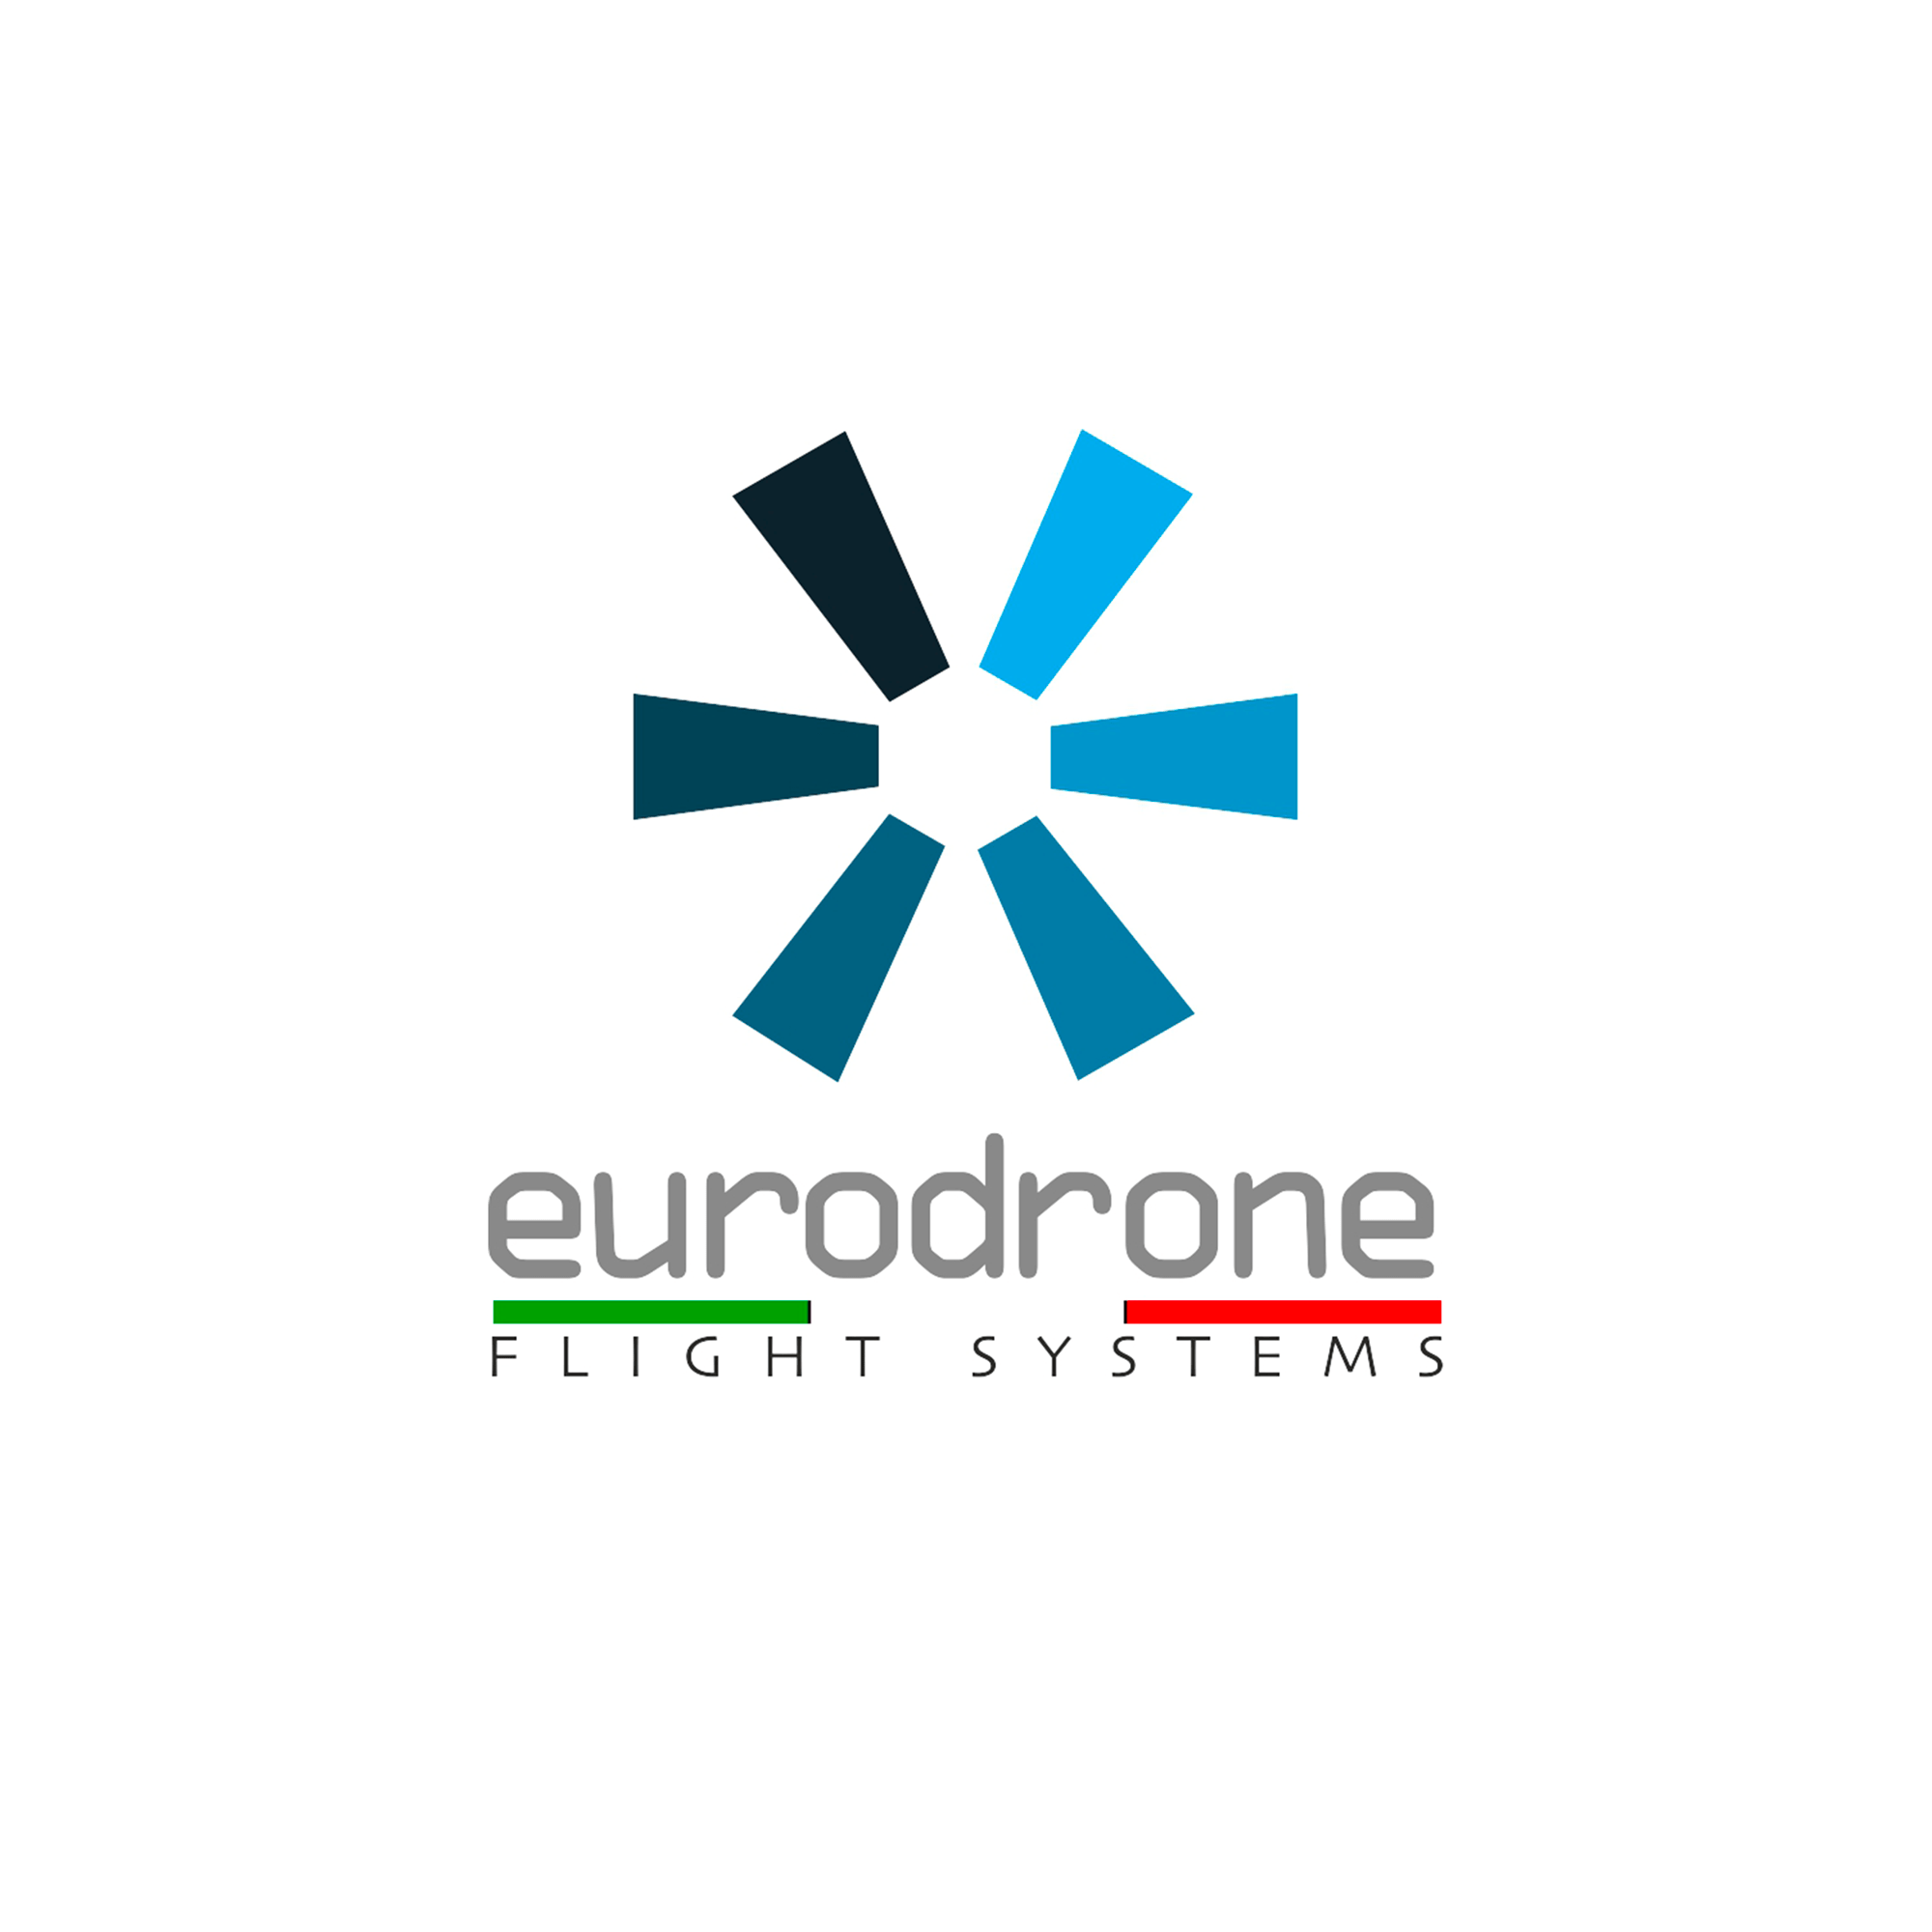 Eurodrone Flight Systems